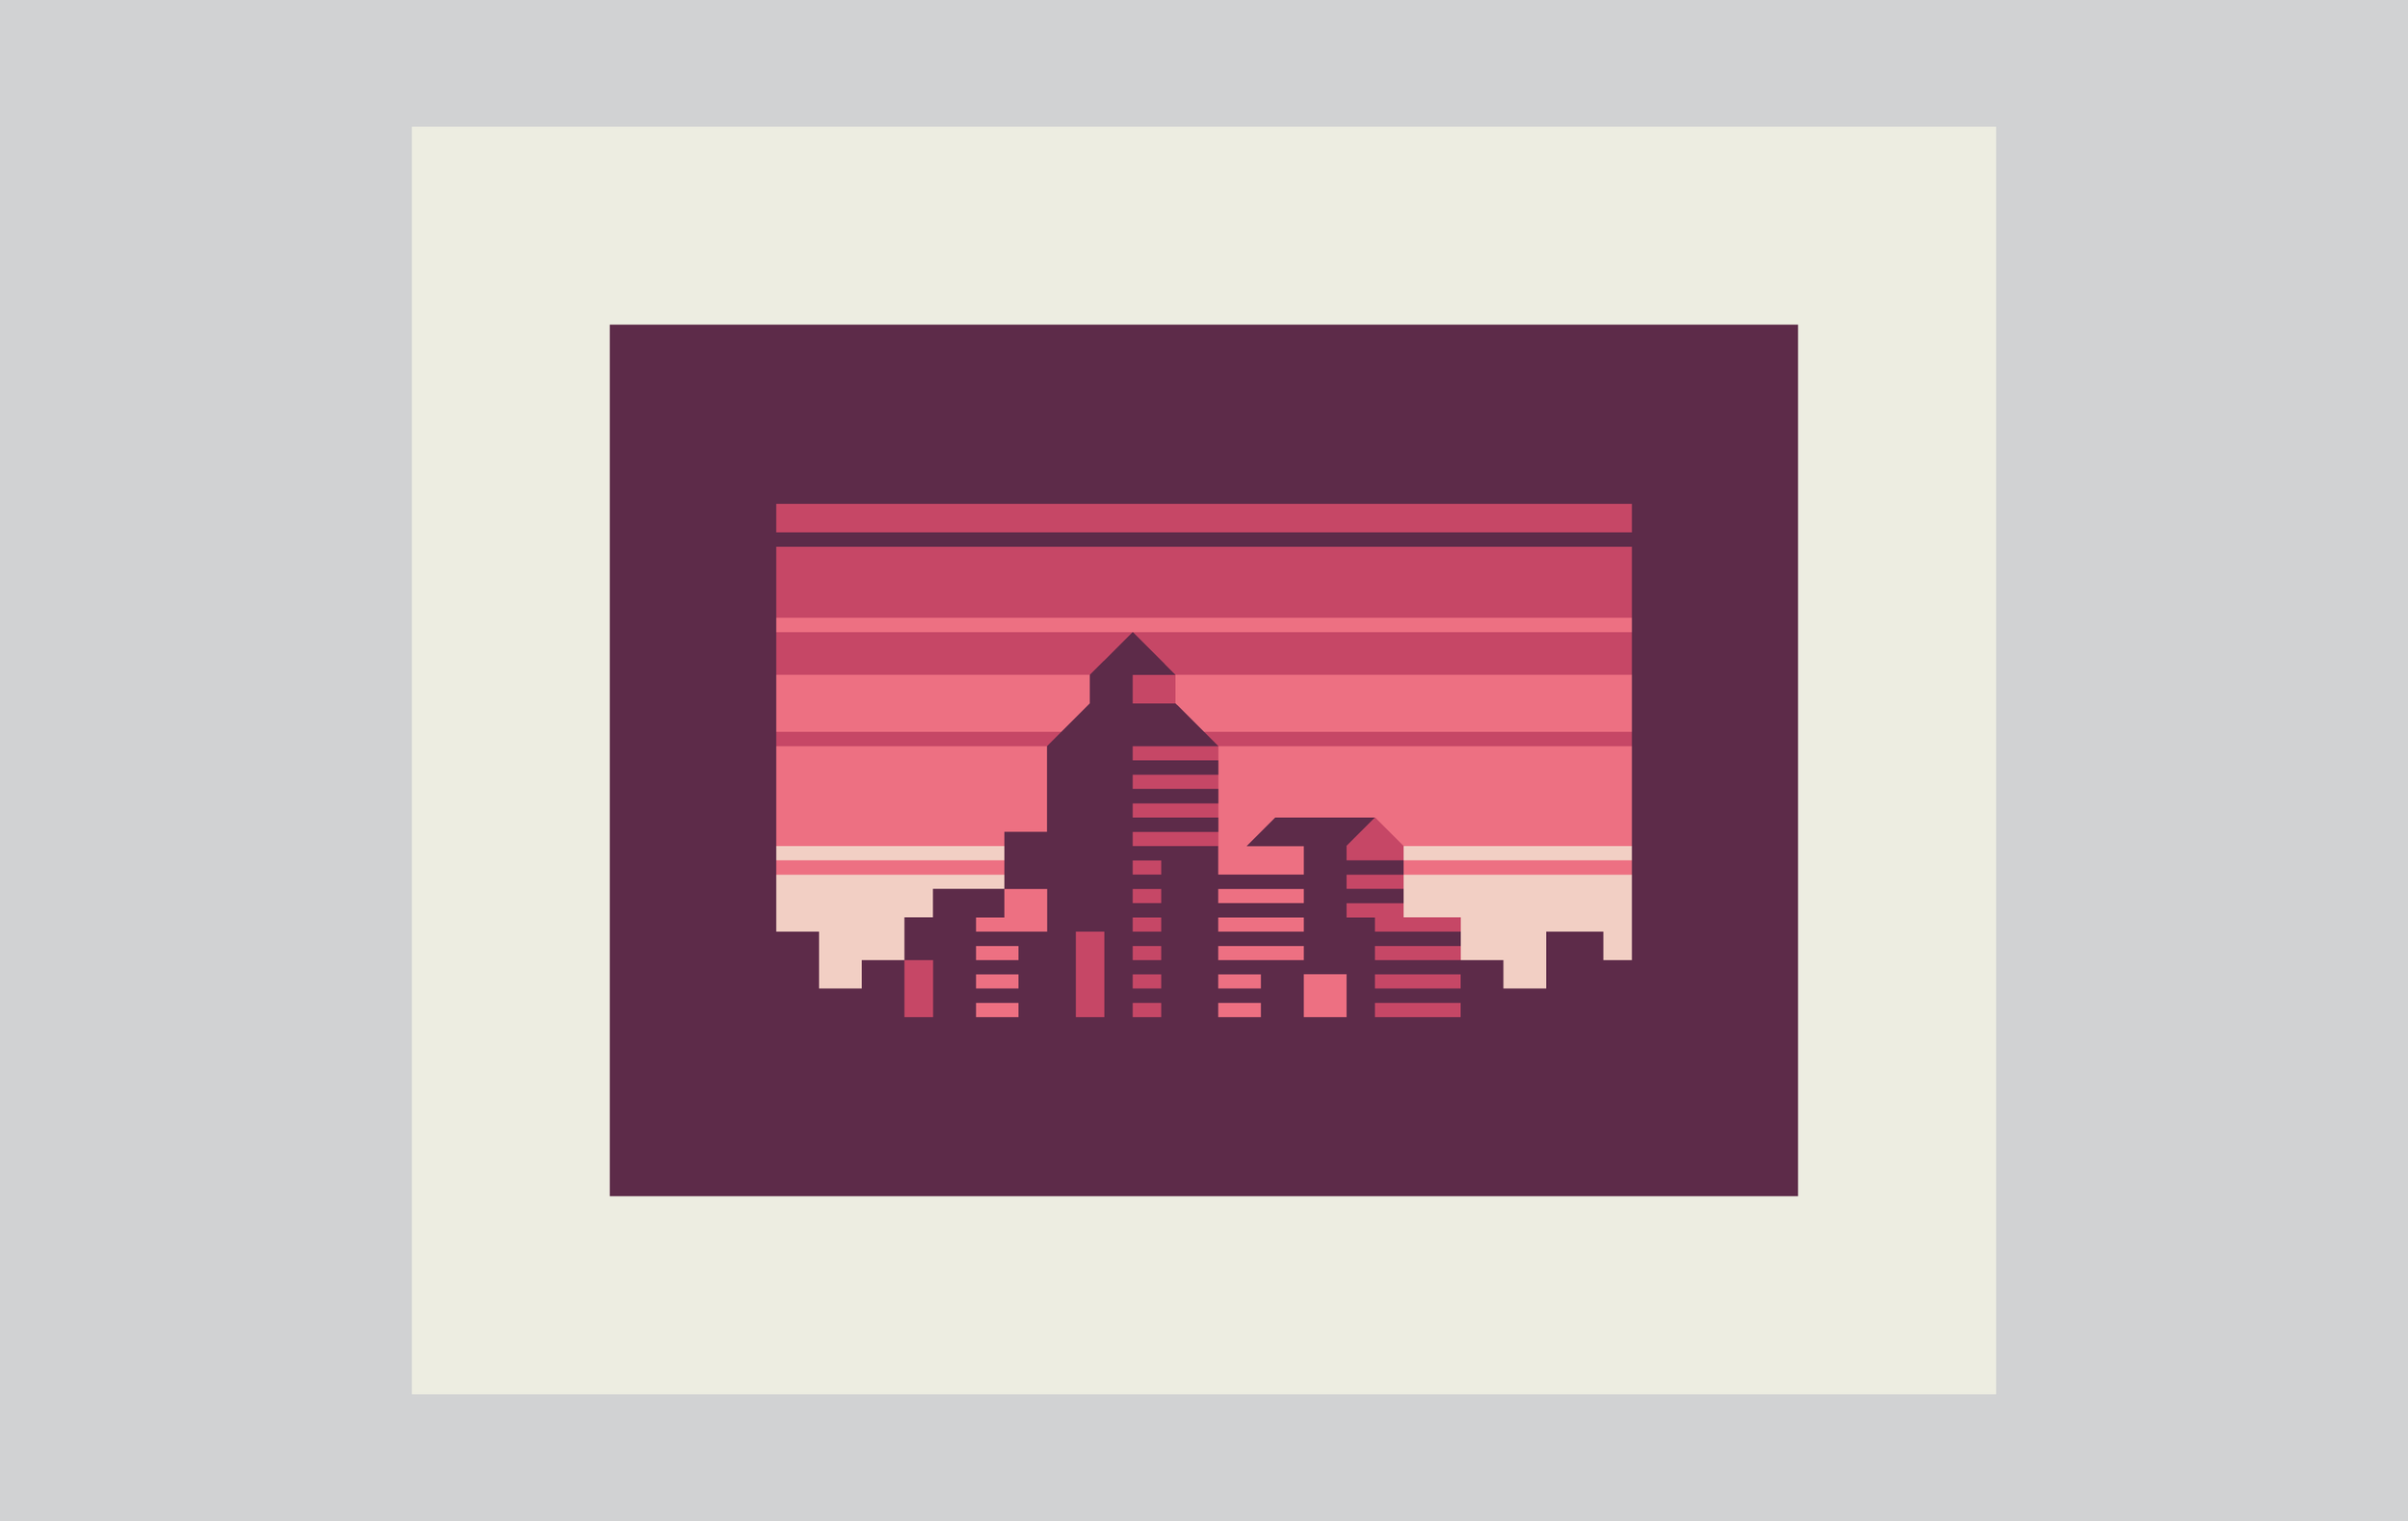 Abstract Cities: Ruby design by Matt Anderson and Canopy Design. Limited color, geometric city skyline.